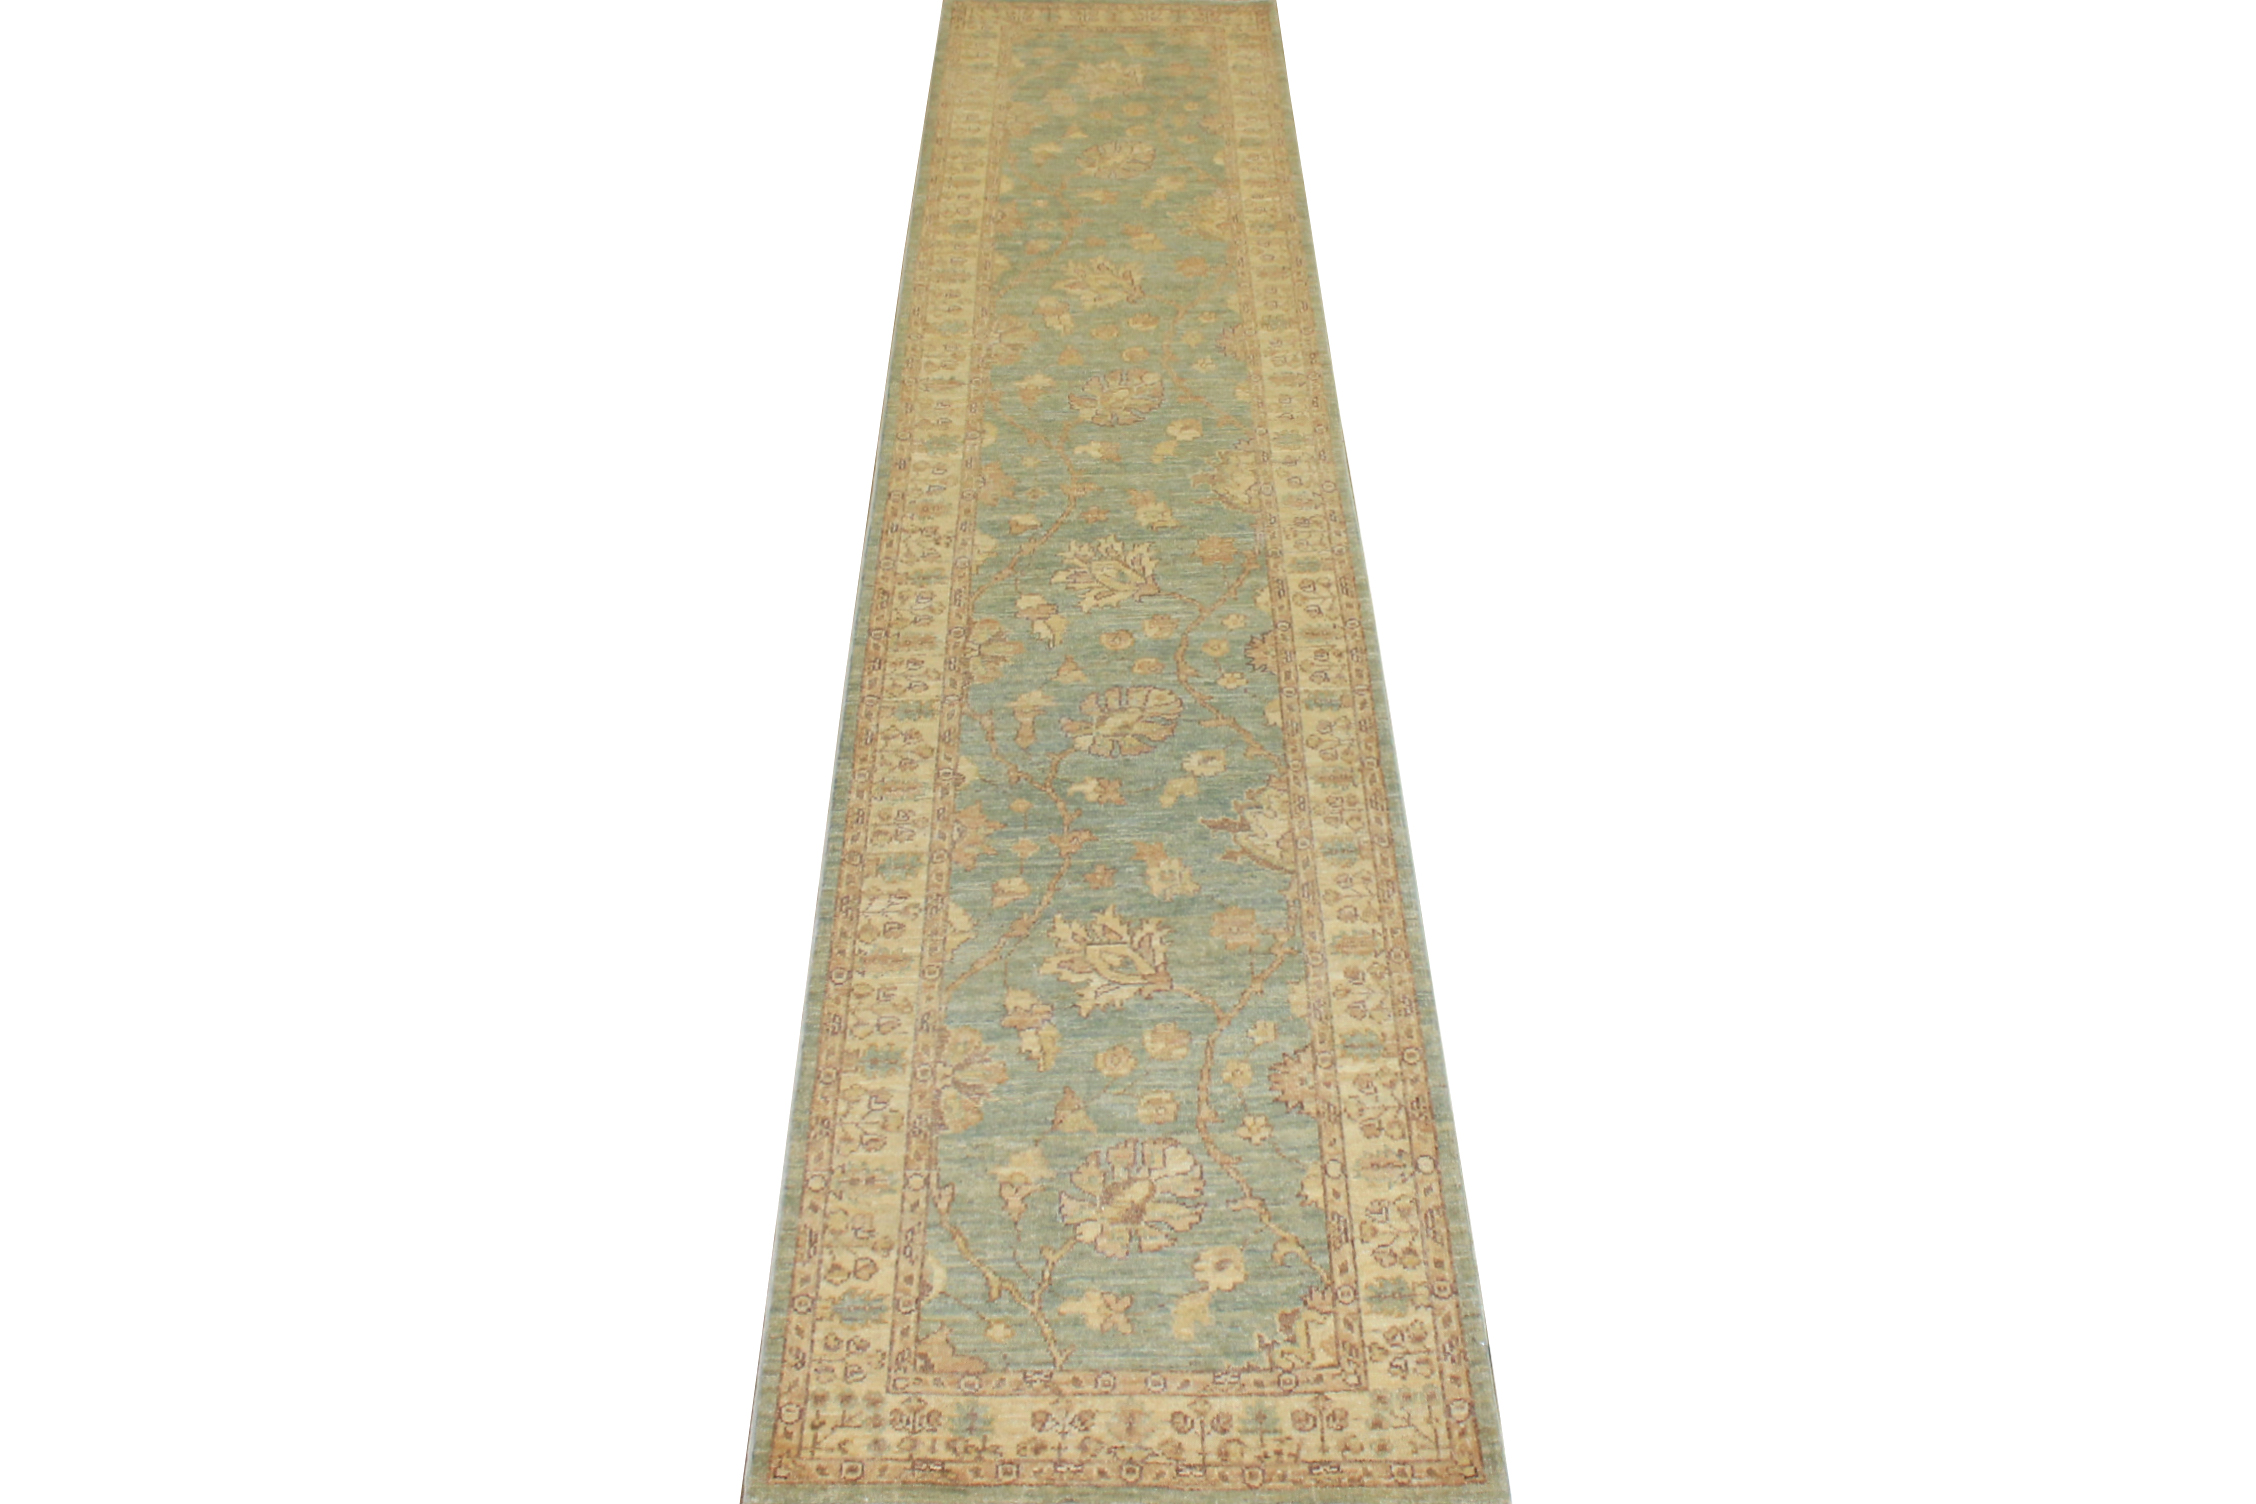 Select Size Peshawar Hand Knotted Wool Area Rug - MR13889